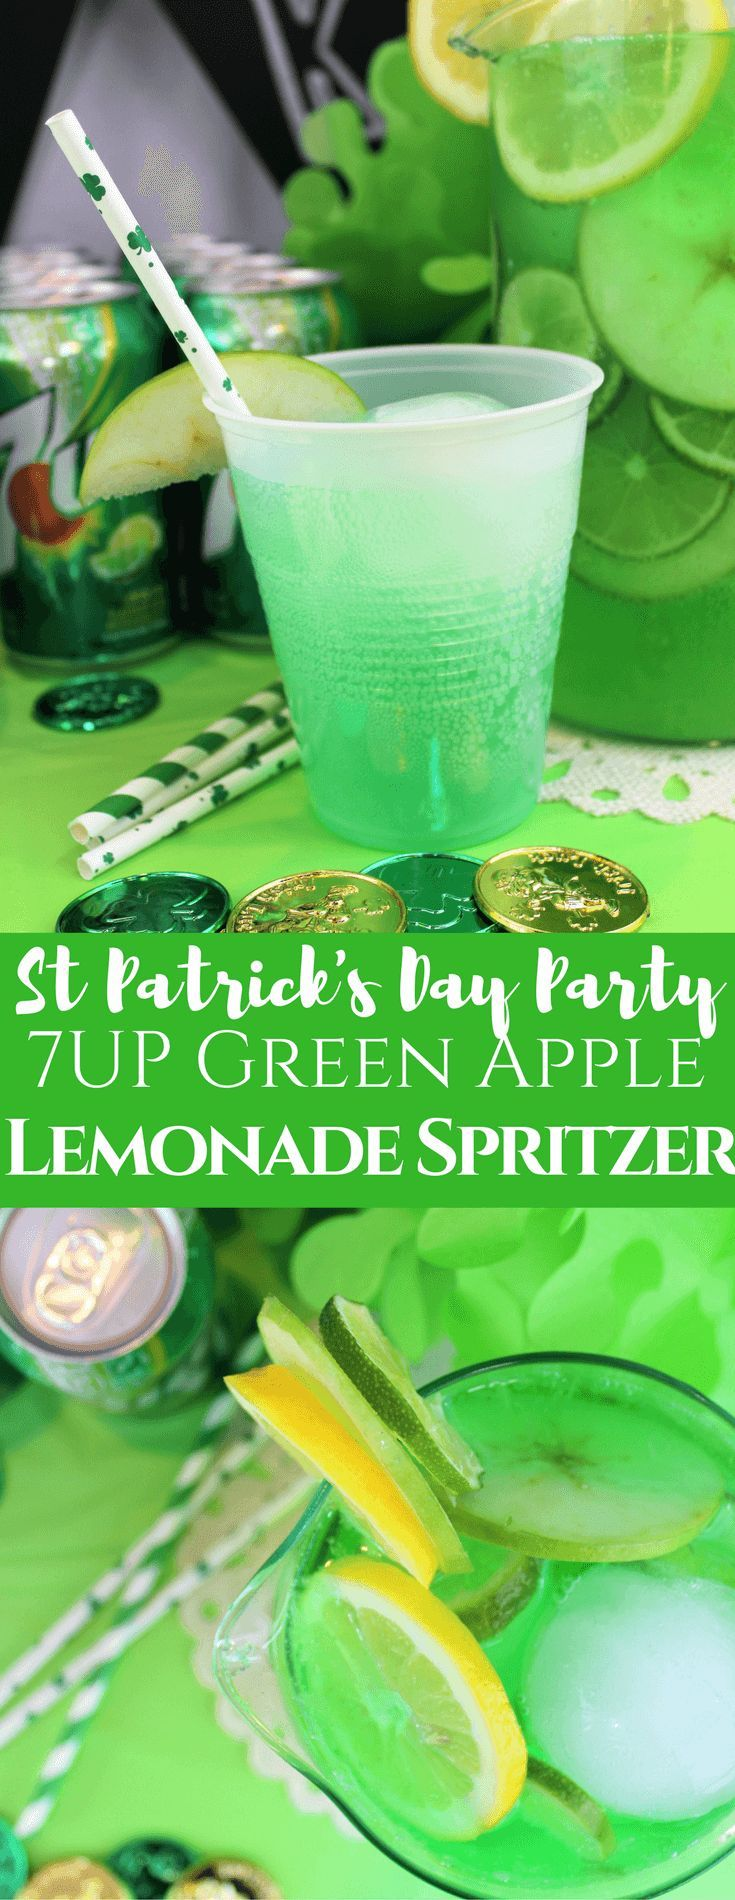 St Patrick's Day Party + recipes #JustAdd7UP #ad #cbias /walmart/